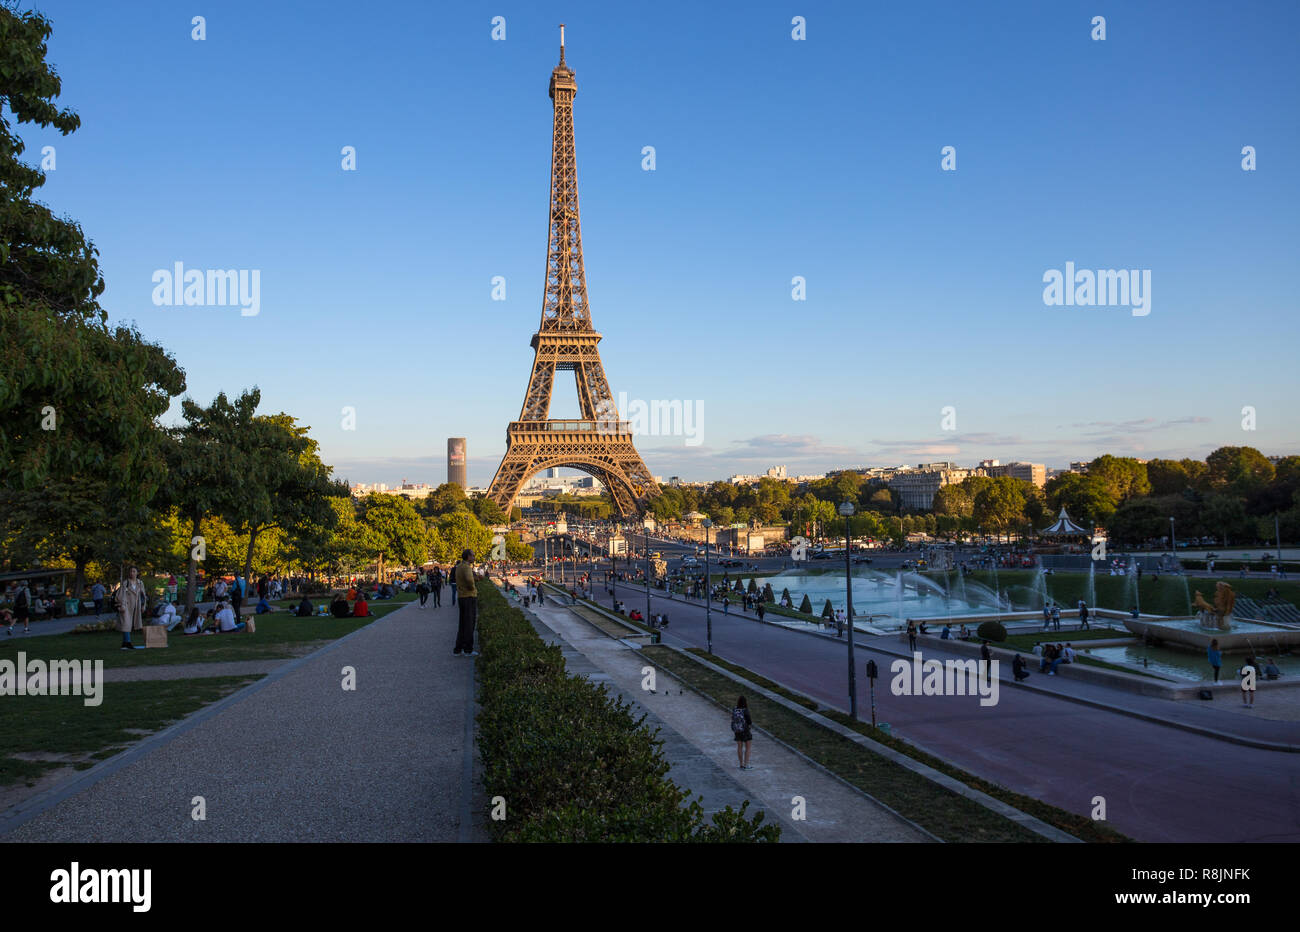 PARIS, FRANCE, SEPTEMBER 7, 2018 - View of Eiffel Tower from Trocadero in Paris, France. - Stock Image